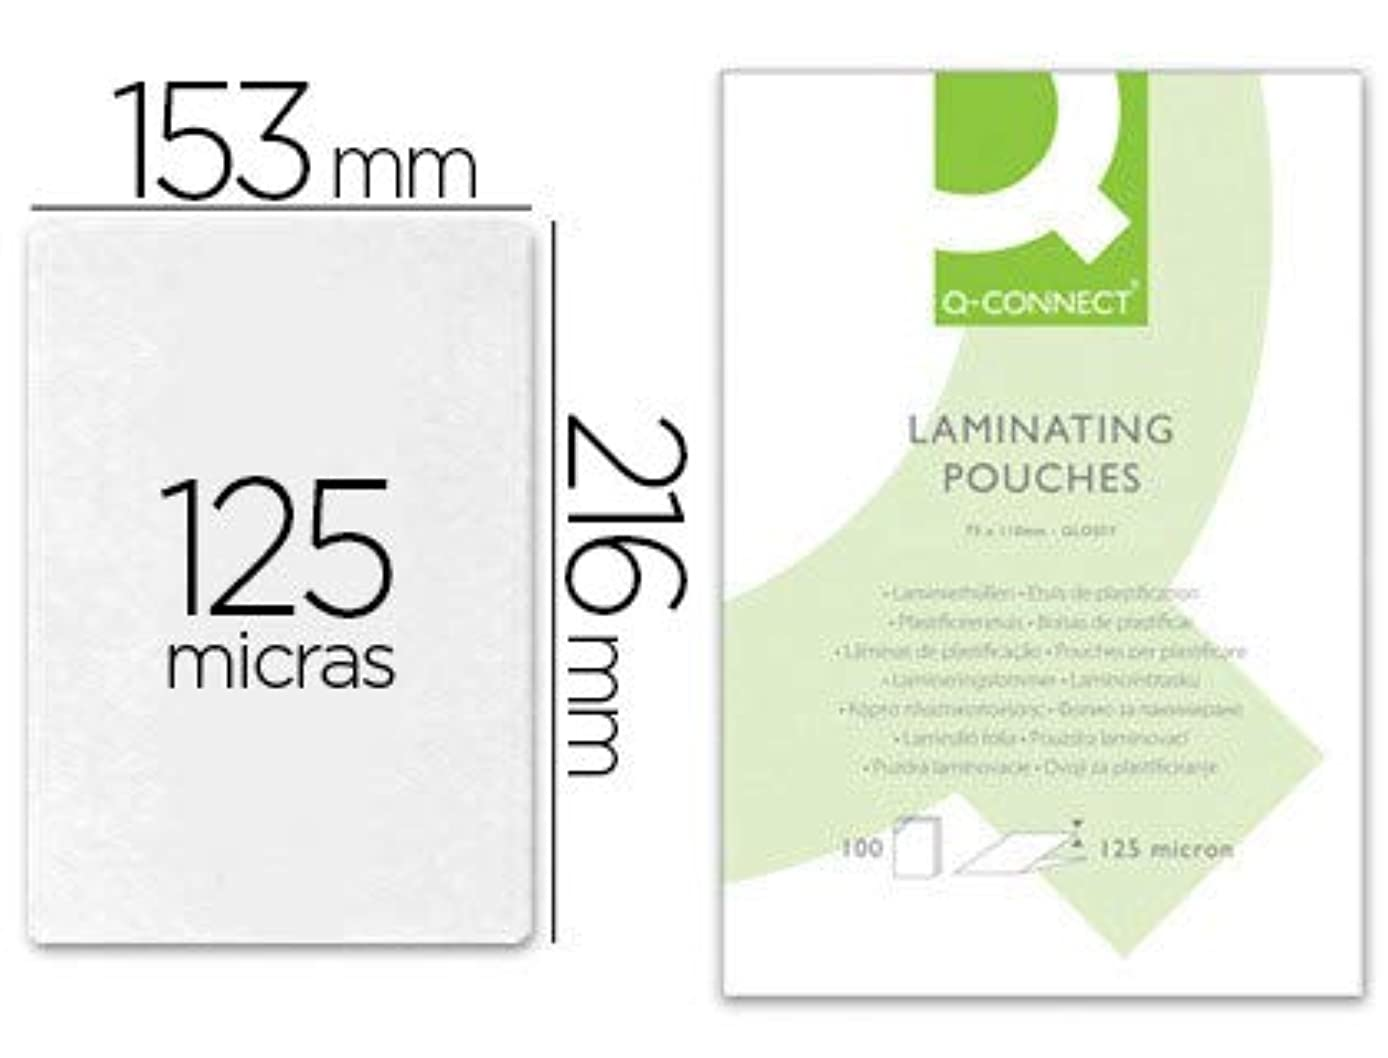 Q-Connect 85793 A5 Anti-Static Laminating Pouch with 125 Micron Adhesive Spine - Assorted (Pack of 25)